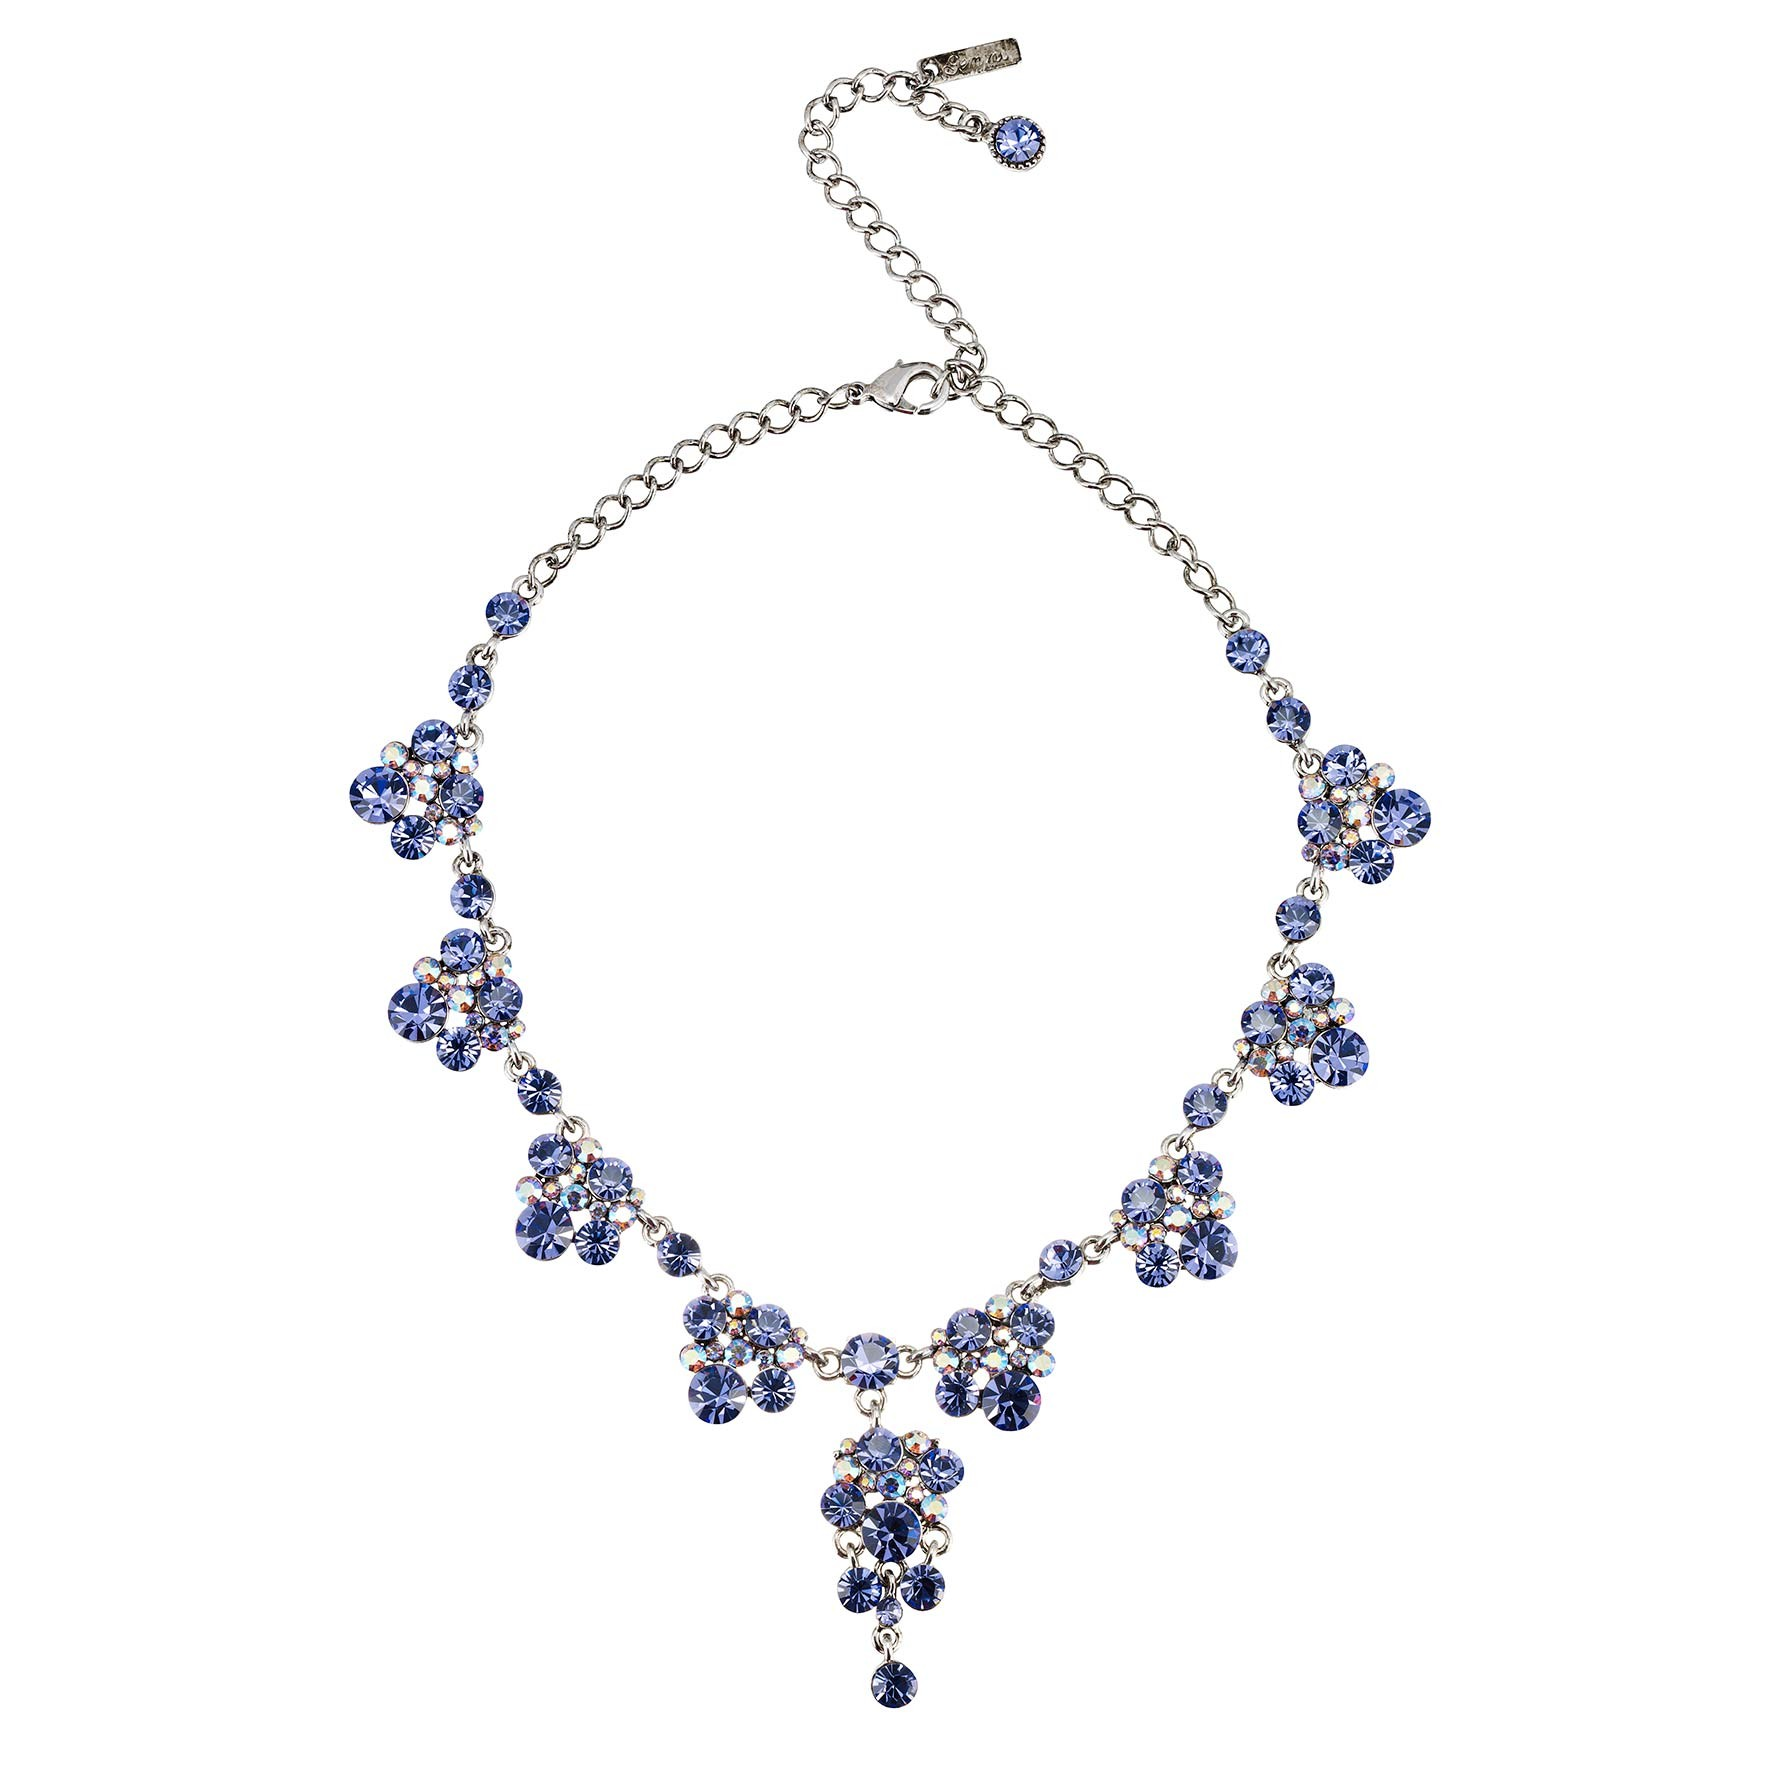 Swarovski Crystal Blue Crystal Necklace and Earrings Set b17e6afd3a